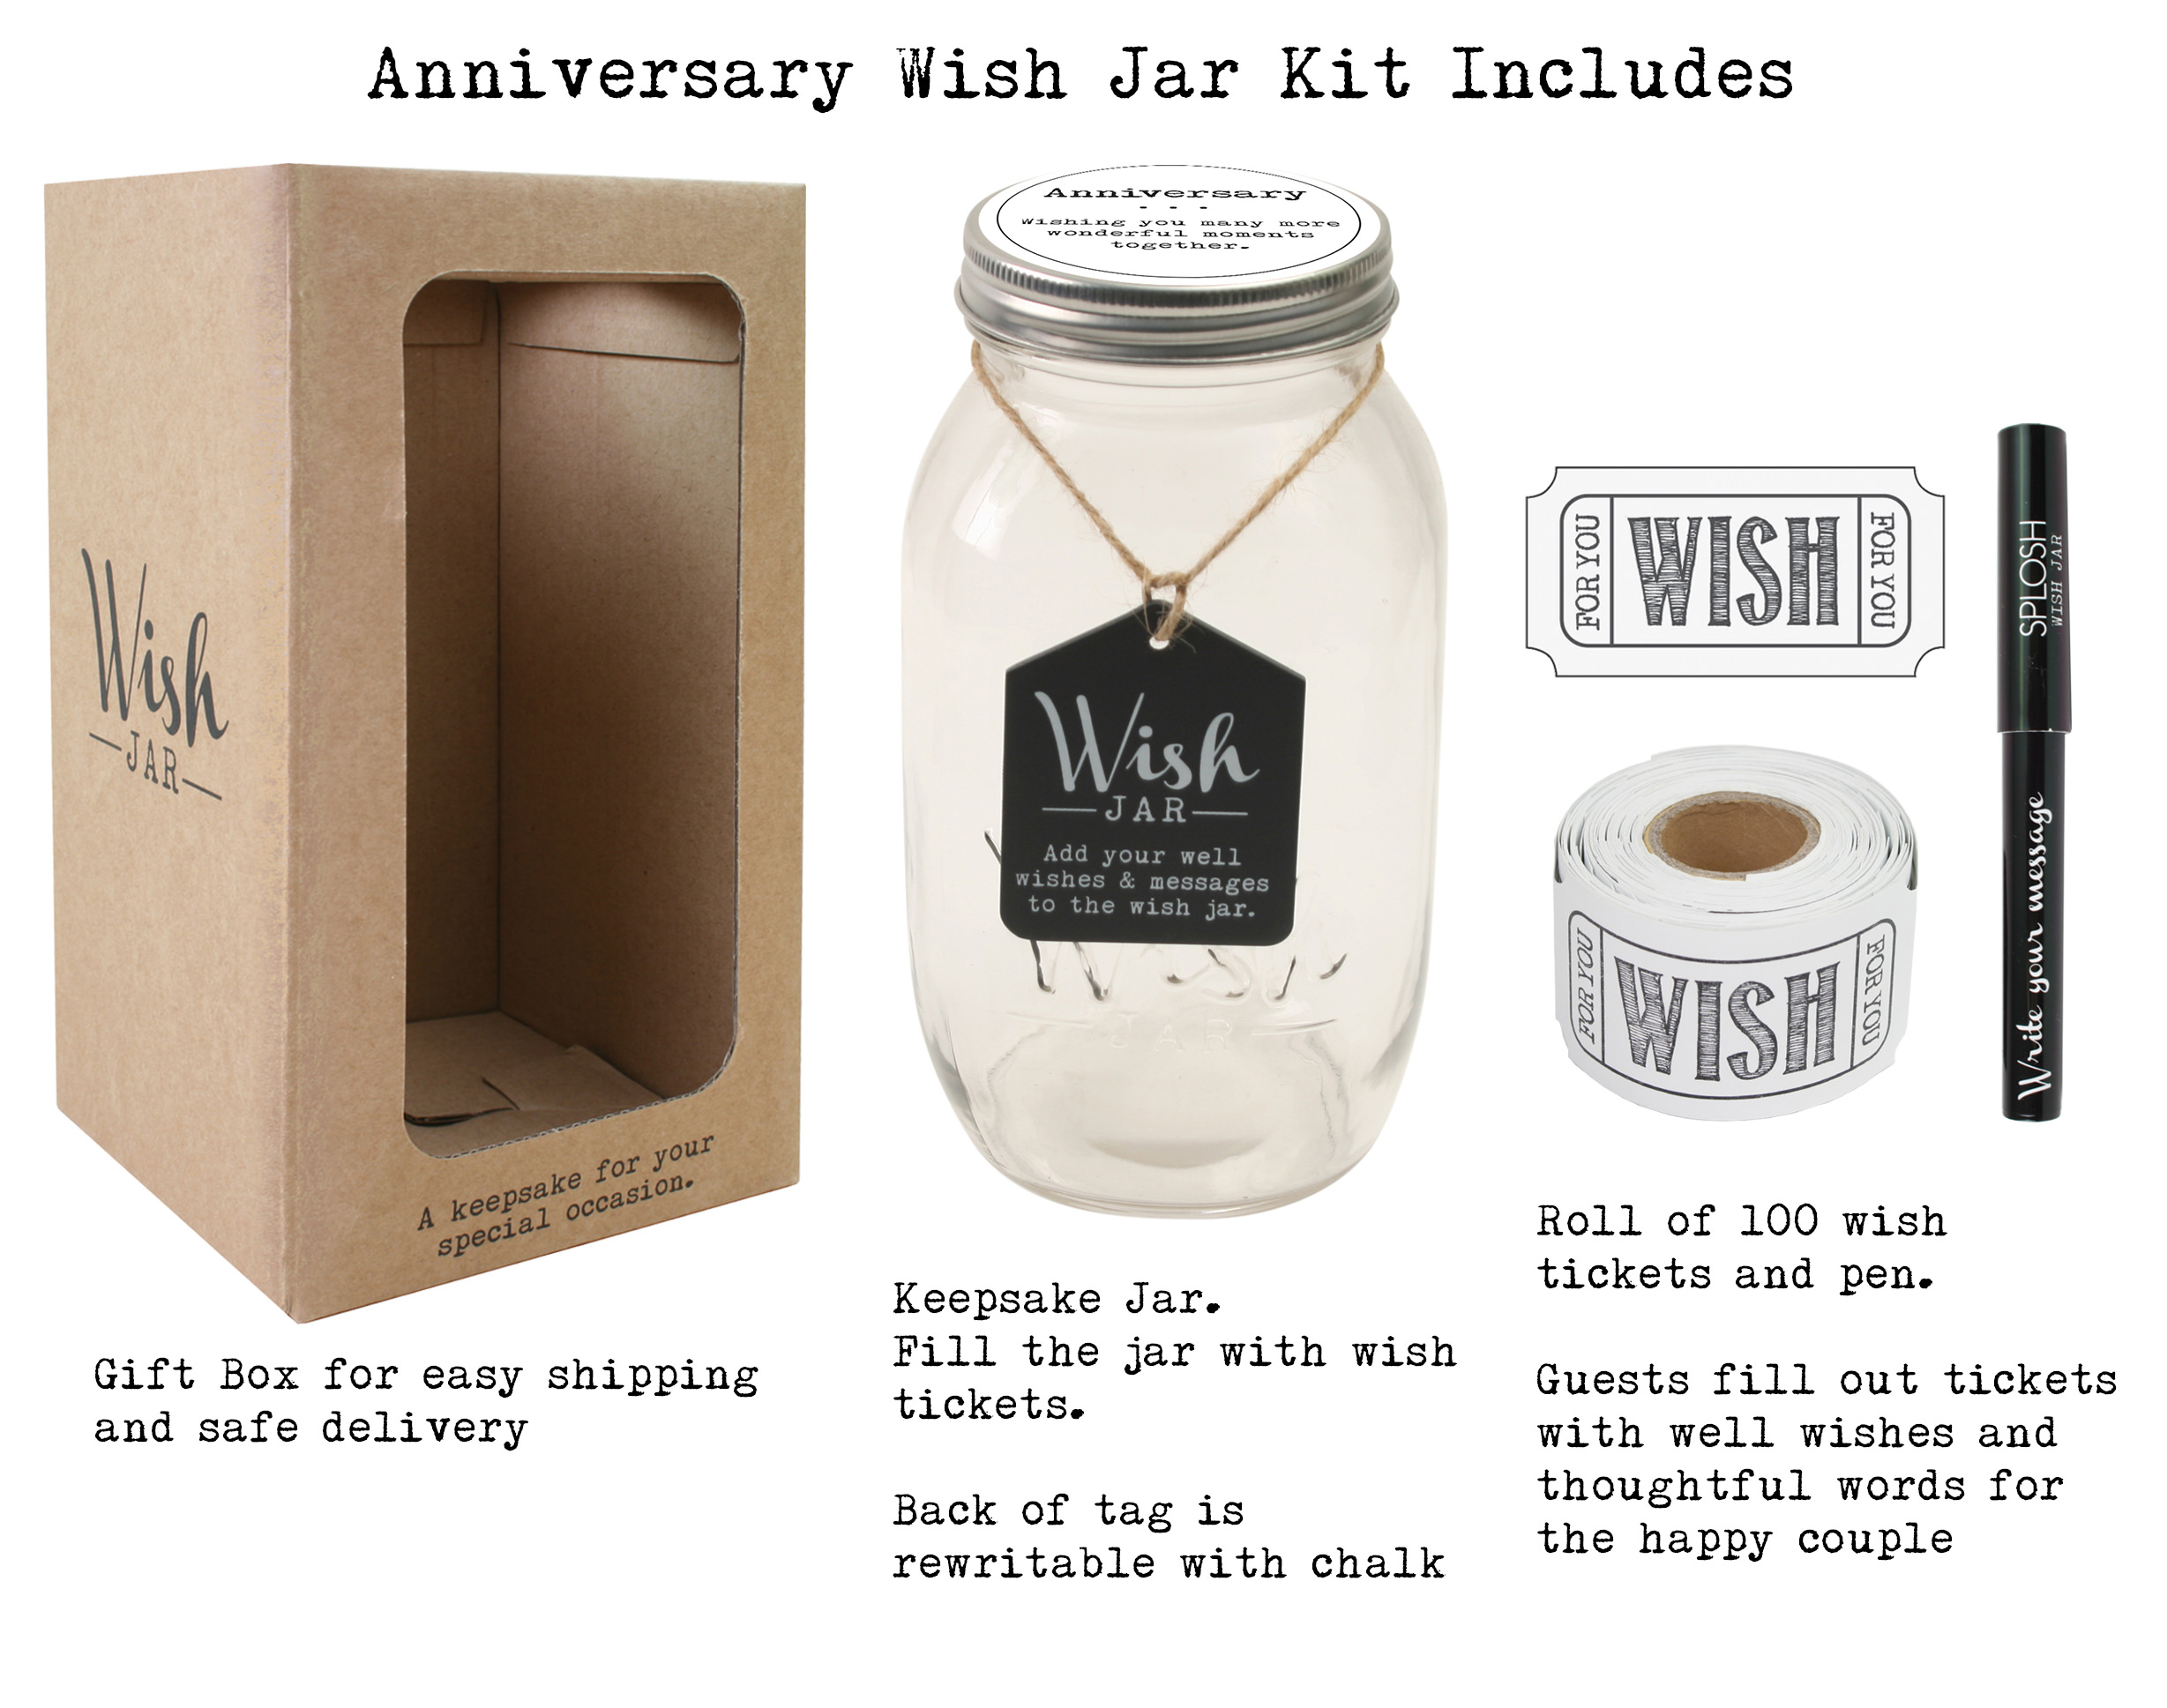 Top Shelf Anniversary Wish Jar ; Personalized Gift Idea for Couples ; Unique and Thoughtful Gifts  sc 1 st  Walmart & Top Shelf Anniversary Wish Jar ; Personalized Gift Idea for Couples ...